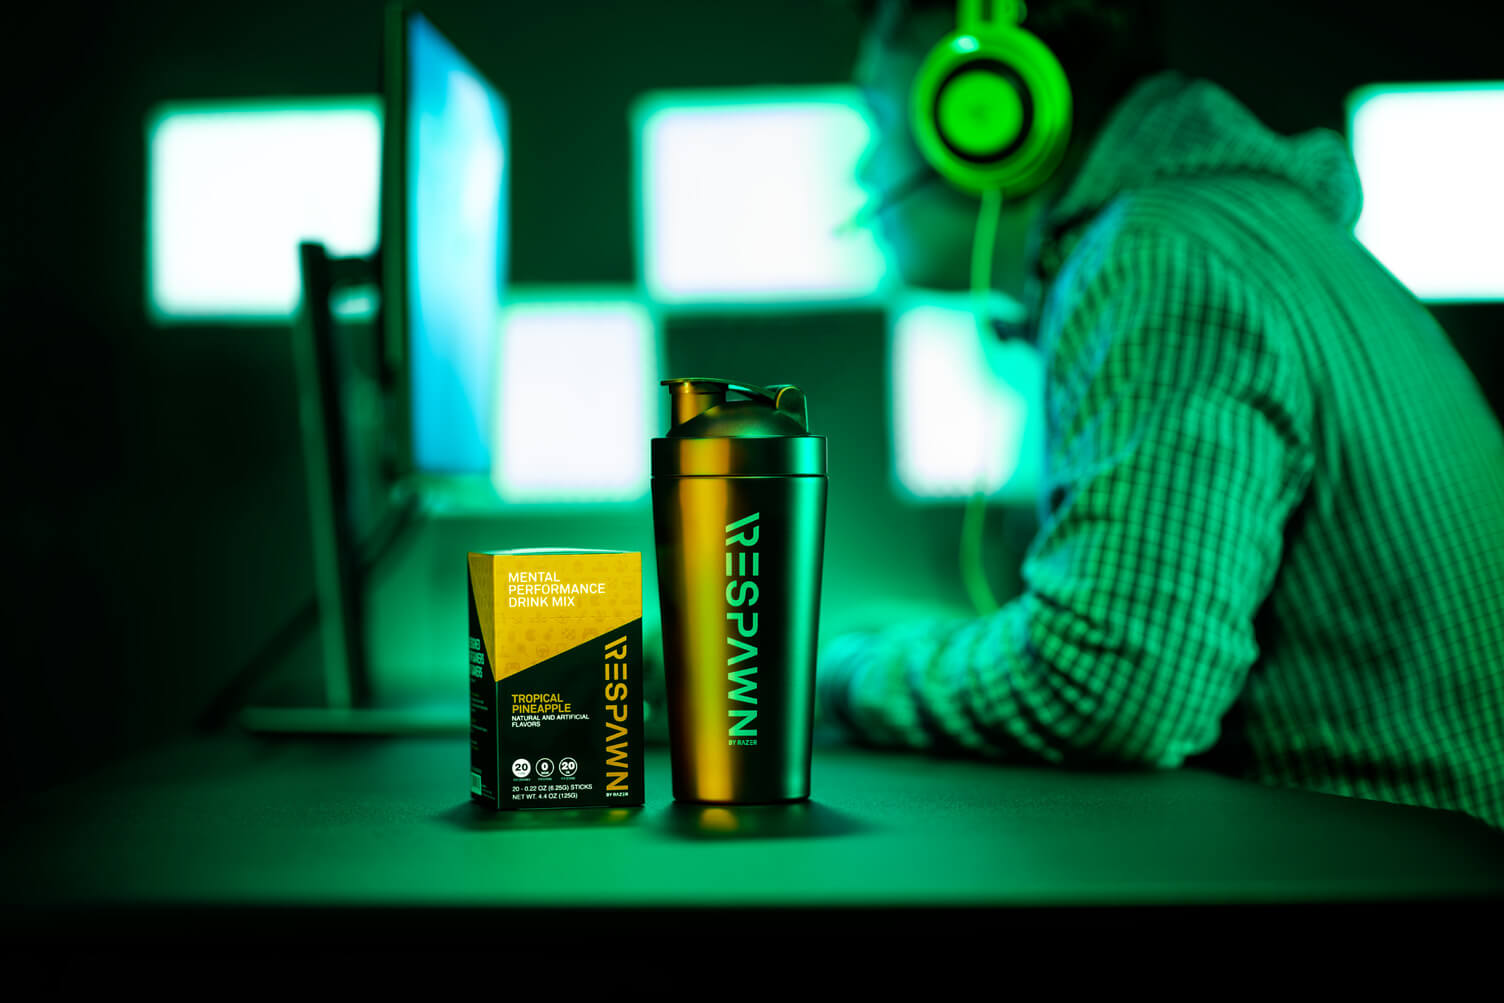 Razer S Respawn Drink Mix Is Meant To Heighten Mental